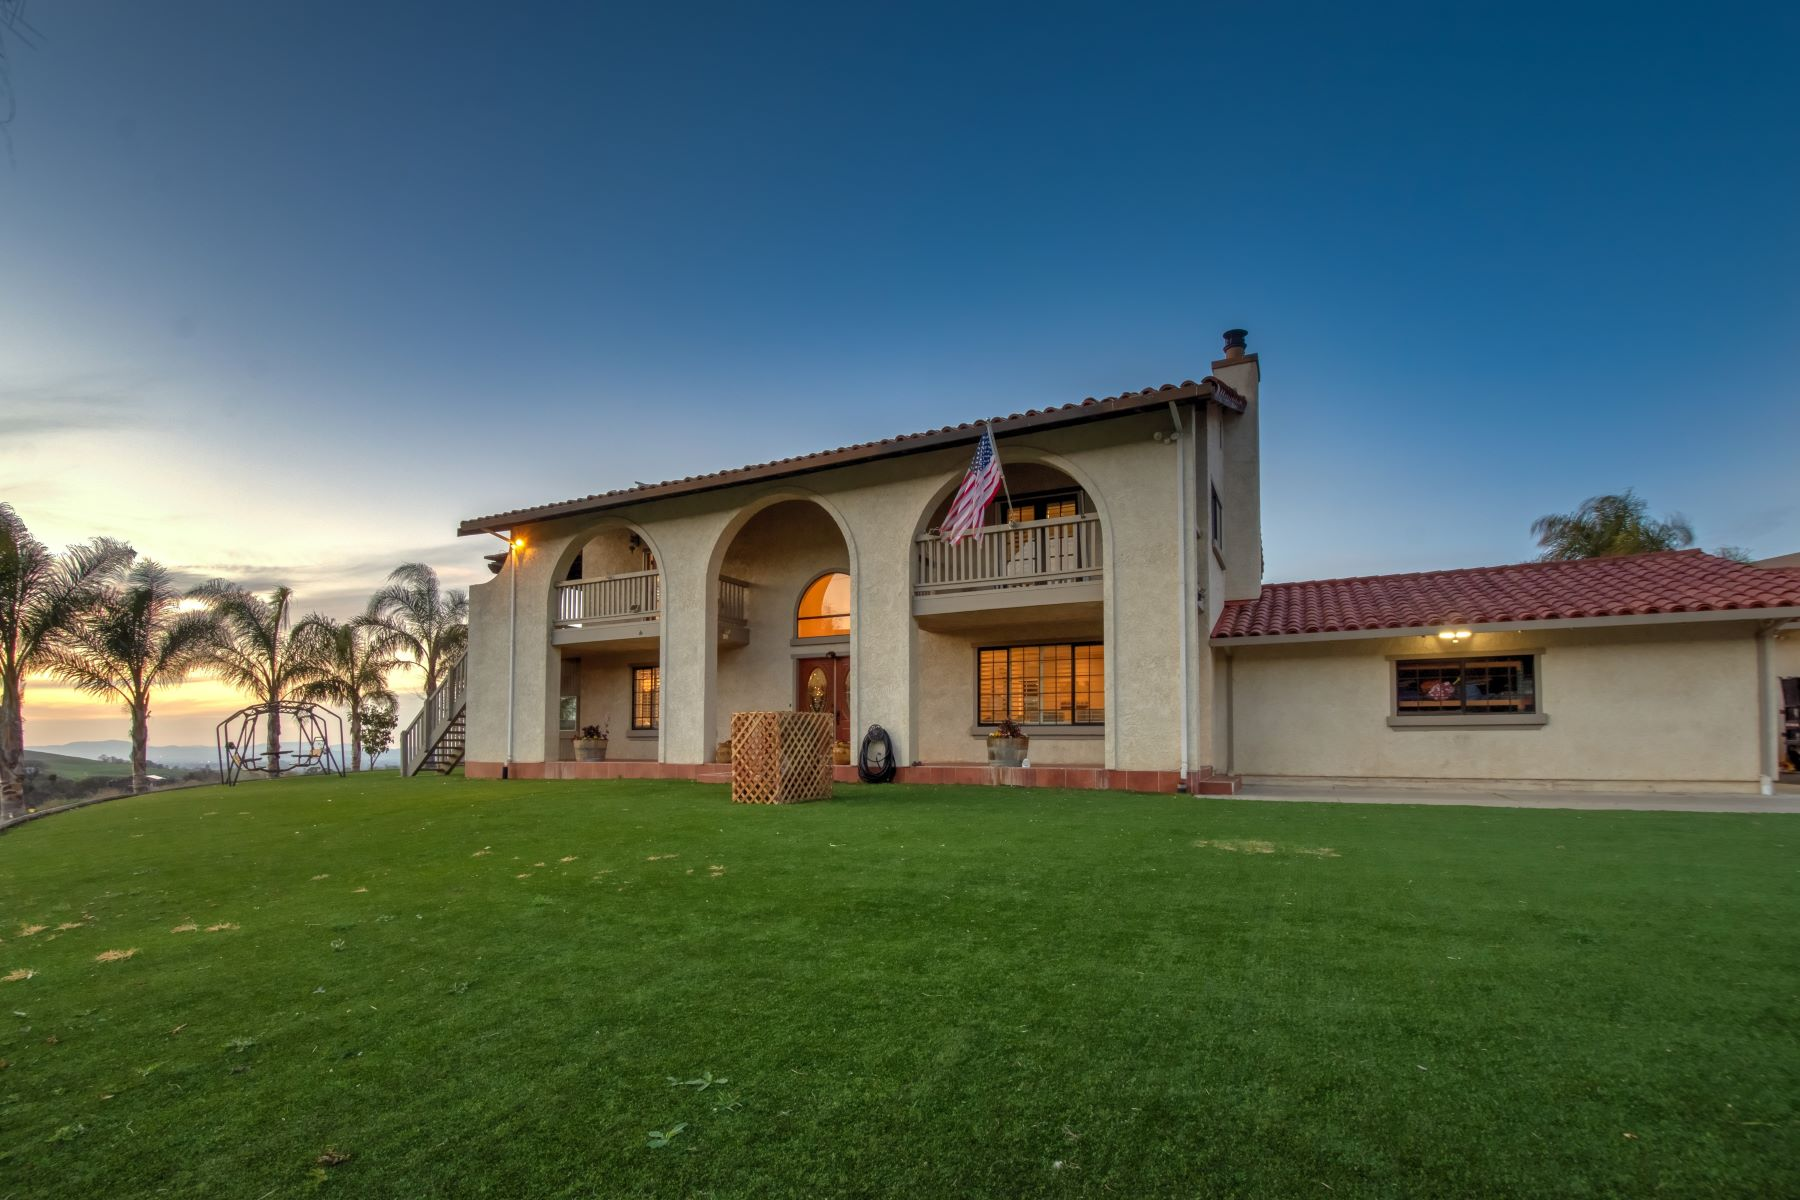 Single Family Homes for Sale at 12200 Tesla Road, Livermore, CA 94550 12200 Tesla Road Livermore, California 94550 United States